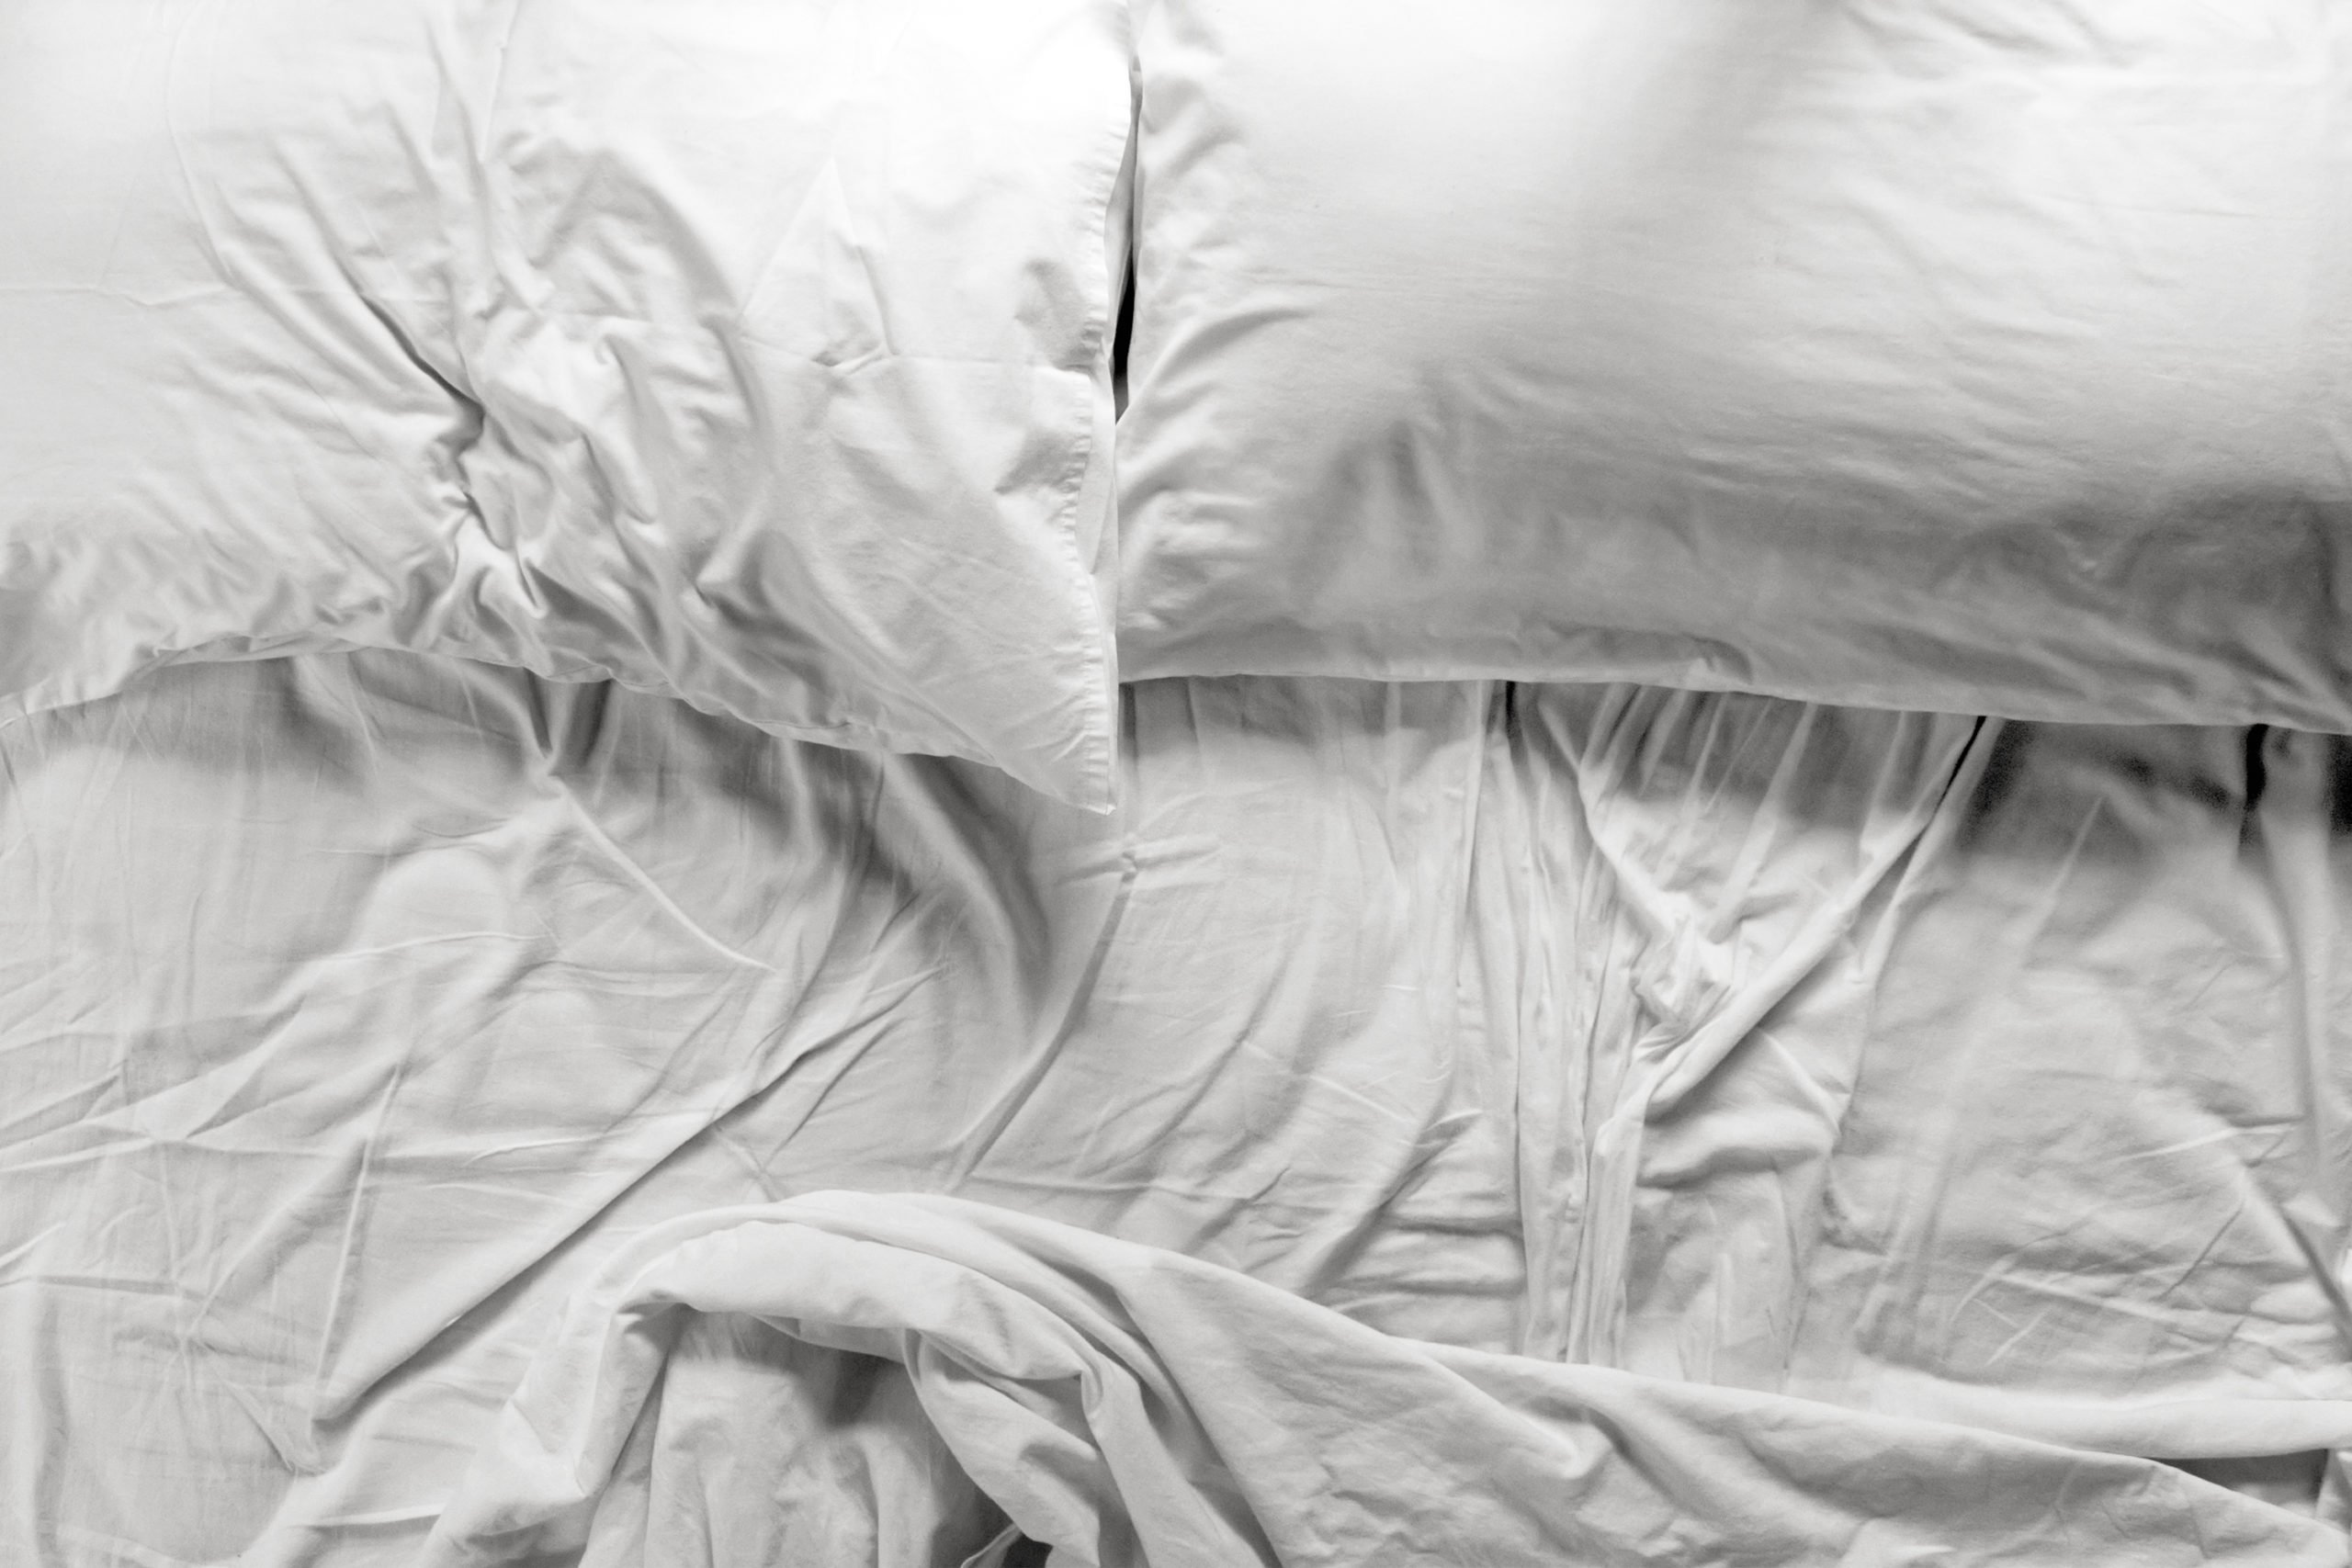 Unmade bed in a bedroom with two pillows and crumpled bed sheet